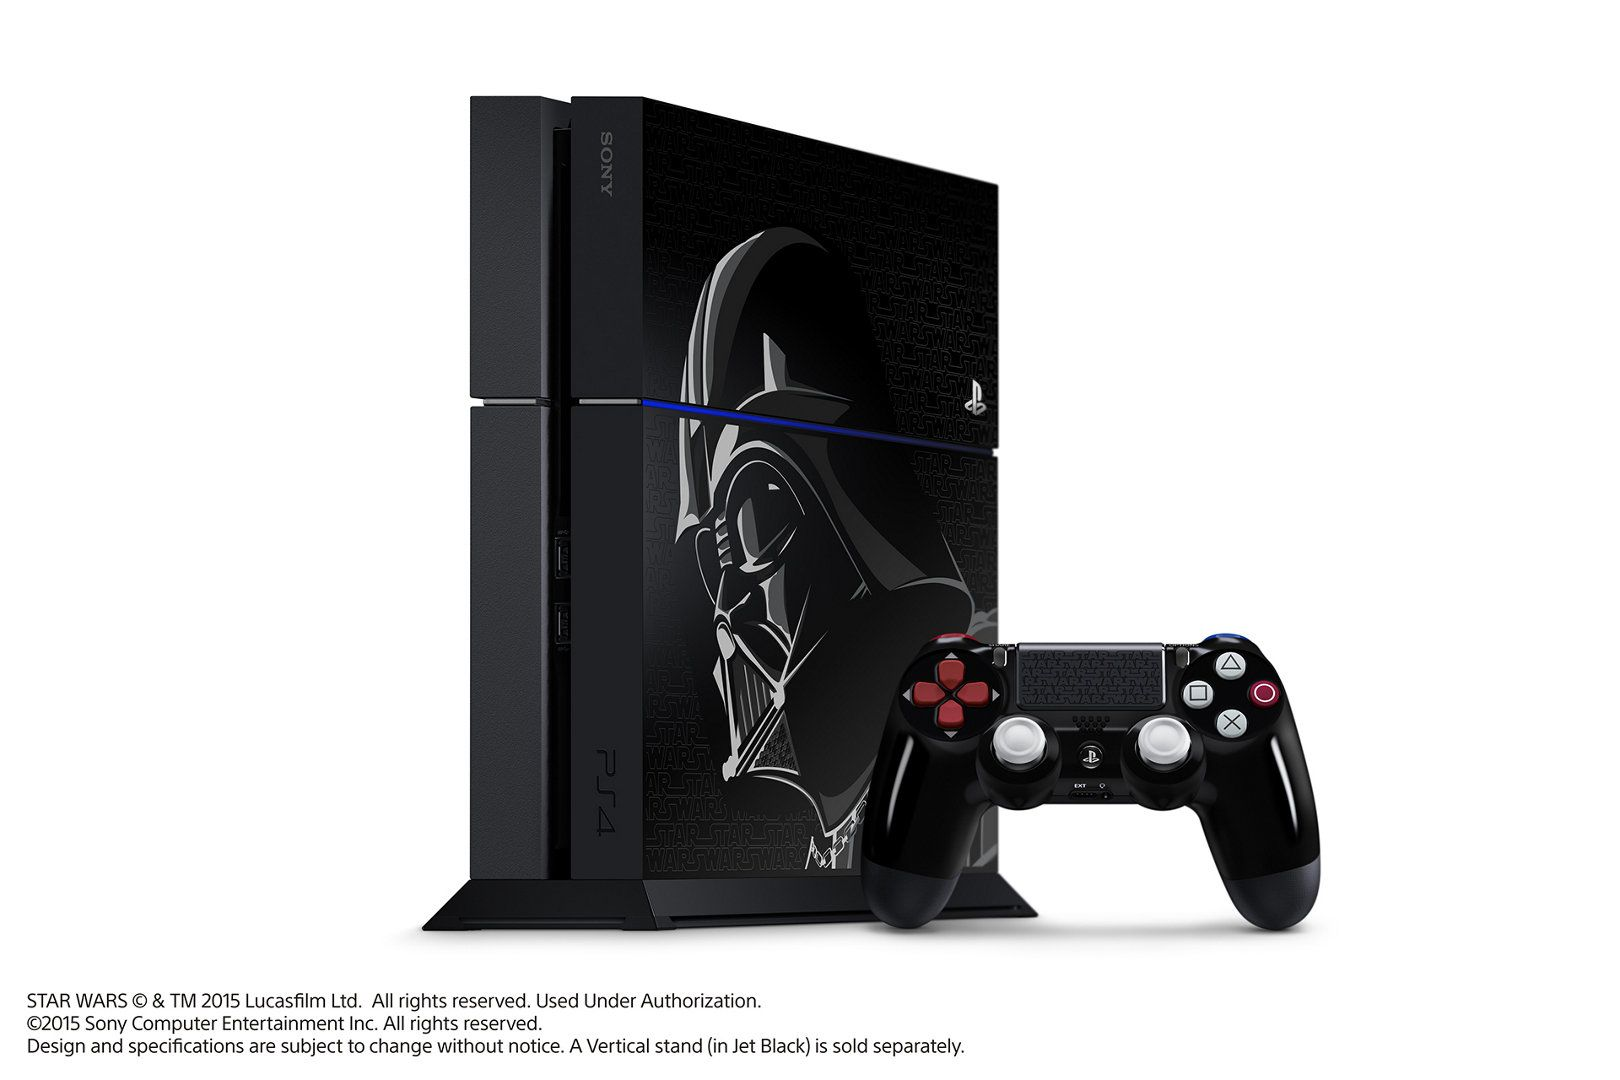 Darth Vader-Themed Star Wars Battlefront PS4 Bundle Costs $450 - GameSpot